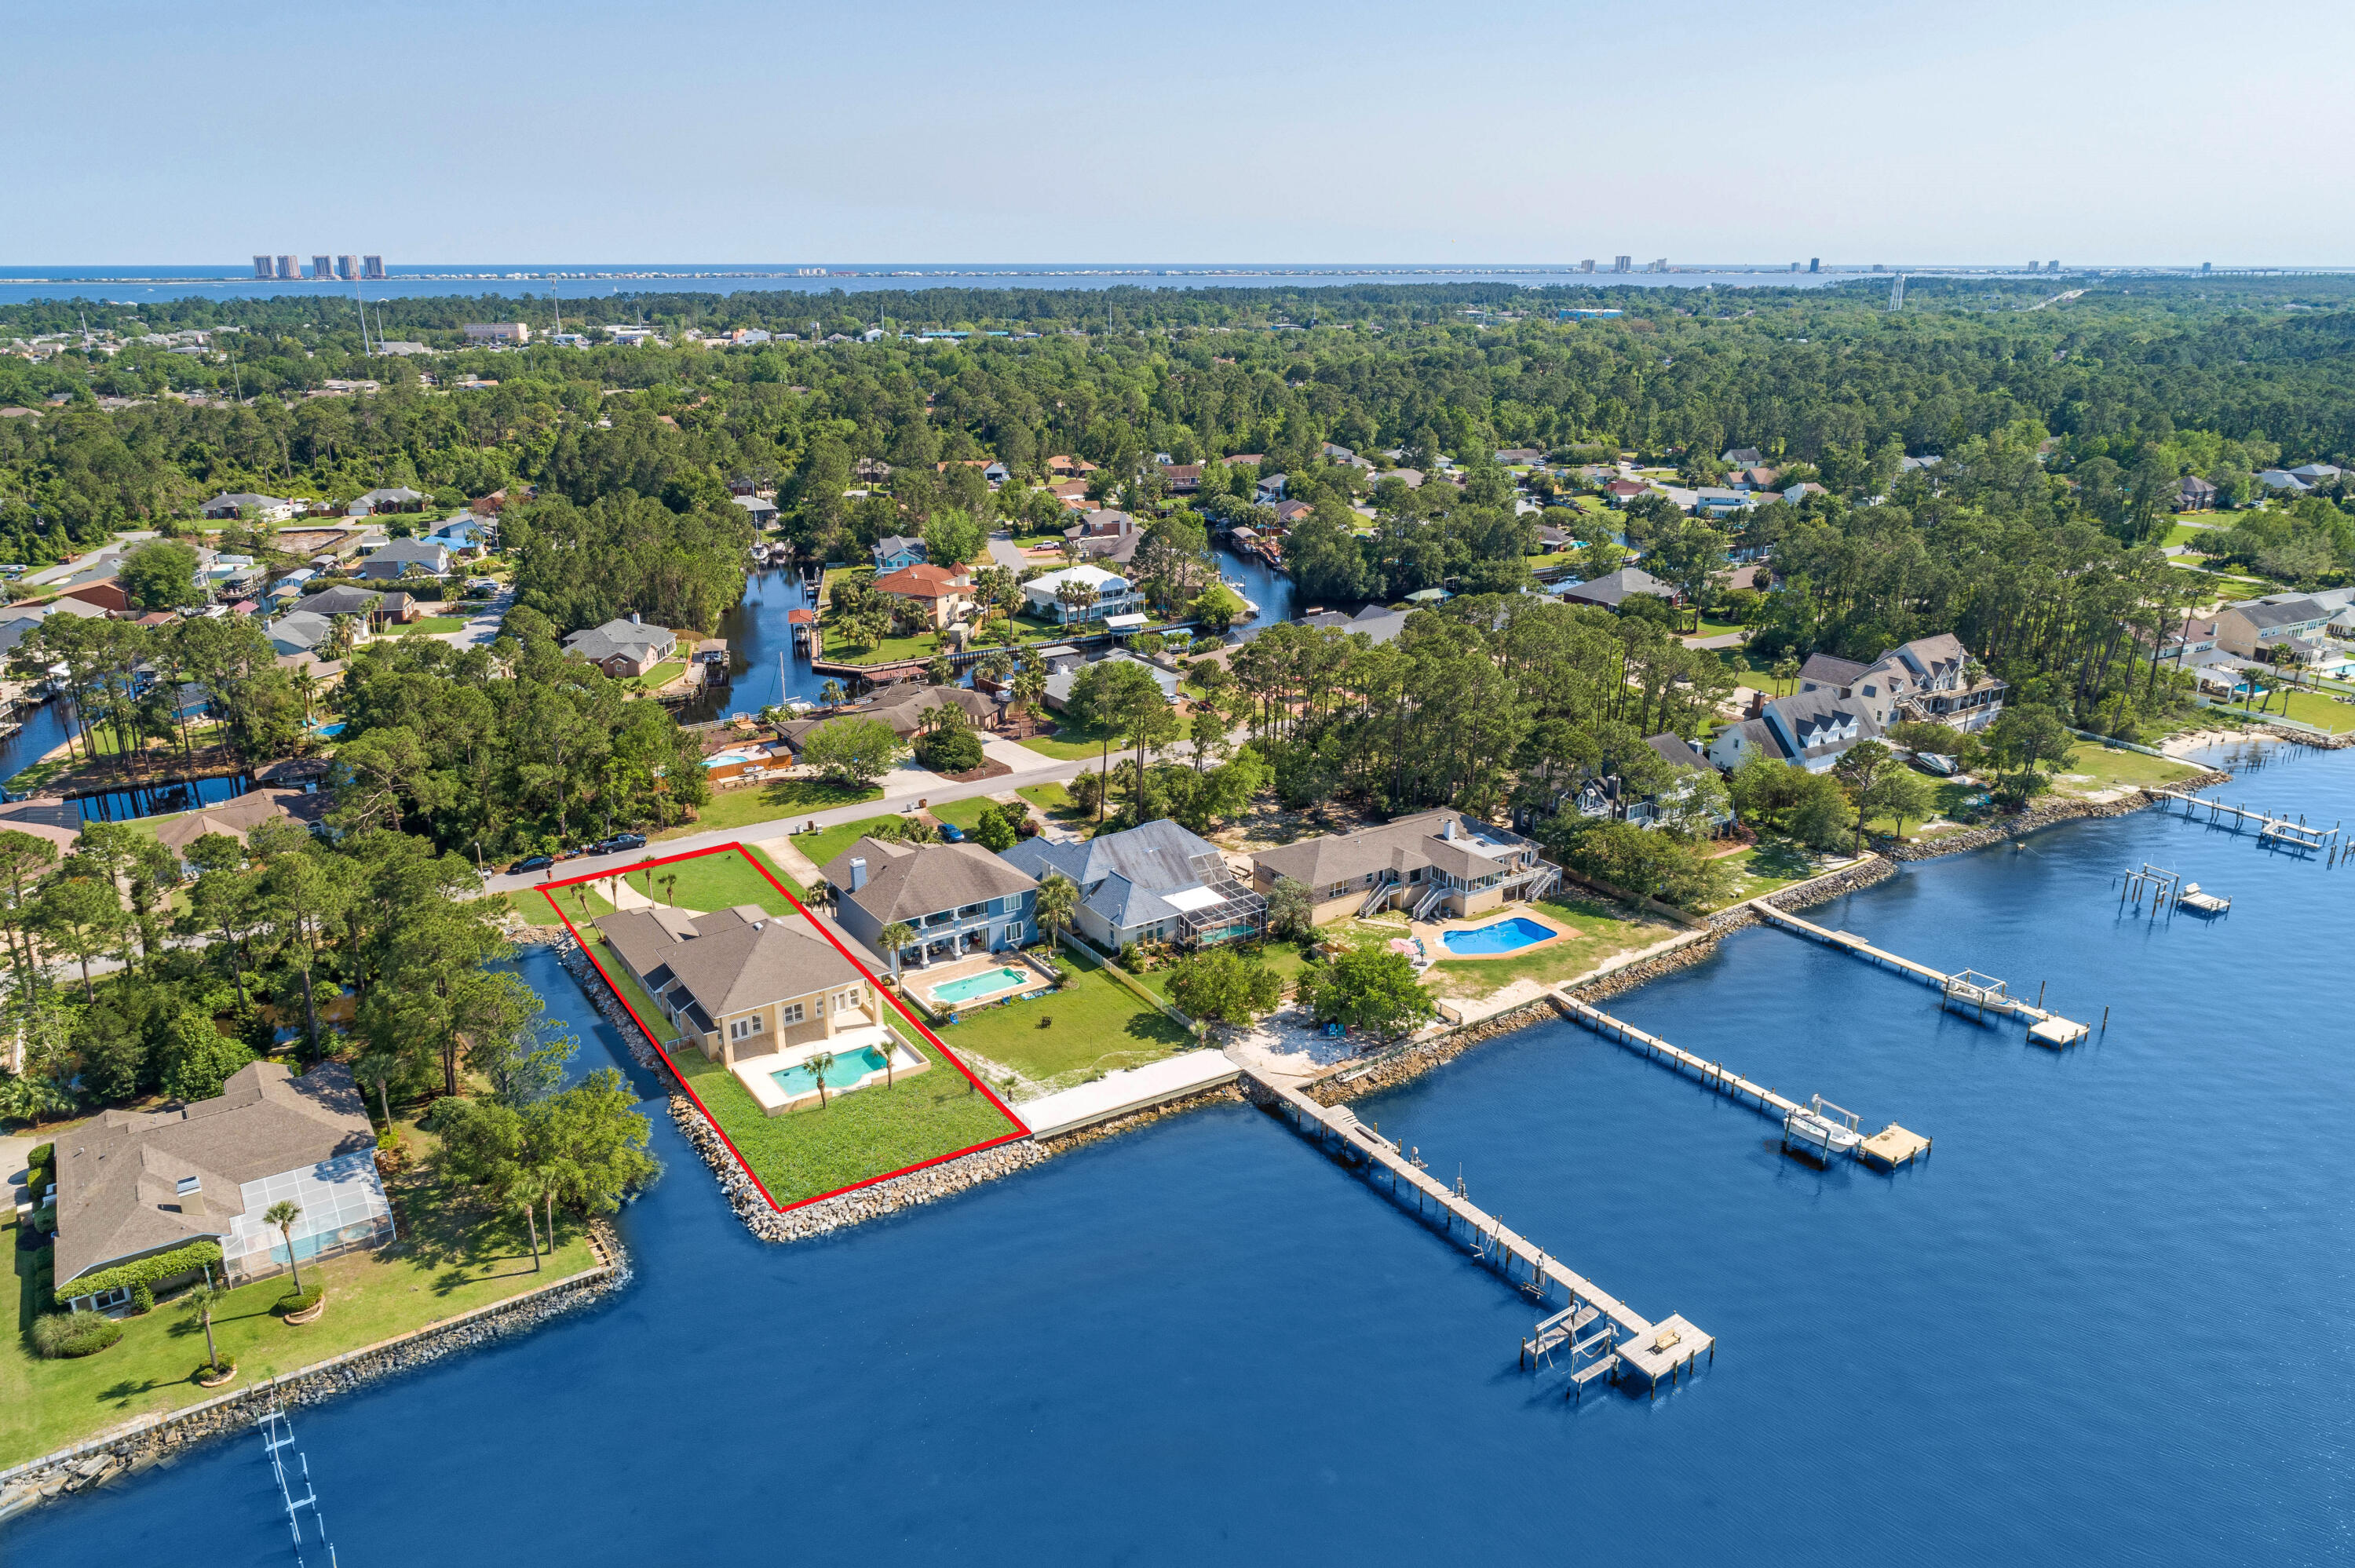 This regal waterfront estate resides on Pensacola Bay and offers a gunite pool with a 3 car garage and an open spacious living area. Embrace the ample natural light that floods into this gorgeous home with stunning water views from the entire living area. Ideal for entertaining, this home offers a sizable kitchen with a  formal sitting/entertaining area, formal dining room and covered lanai (47'x14'). Enjoy the resident dolphins that frequent the area daily and relax and enjoy epic sunsets from your backyard oasis. The kitchen comes equipped with custom cabinetry with pull out drawers, granite countertops, a plethora of cabinet storage and counter top space, double wall oven, 5 burner electric cooktop, prep sink, built-in desk and walk-in pantry. The primary suite has a separate entrance t o the lanai, dual walk-in closets and the bathroom has a walk-in shower with dual shower heads, garden tub, his-and-hers vanity with linen storage and a water closet. Upstairs you'll find 3 bedrooms and 2 bathrooms. Two bedrooms share a Jack-and-Jill bathroom and the 3rd bedroom makes for a great guest/in-law suite with a massive walk-in closet and bathroom with a walk-in shower and garden tub with abundant cabinet storage and water views. Other notables are BRAND NEW irrigation well and pump, plantation shutters, crown molding, over-sized laundry room with additional storage and utility sink, powder room for guests, additional  storage room in garage, pull down attic stairs, termite bond, hurricane protection, fenced back yard, child safety gate for pool, eve lighting and exterior ring camera. 160 tons of rip rap just added. Flood insurance is $550. Located in Gulf Breeze school district and just 7 miles to beautiful Pensacola Beach. Check out our full video tour on the MLS and YouTube.